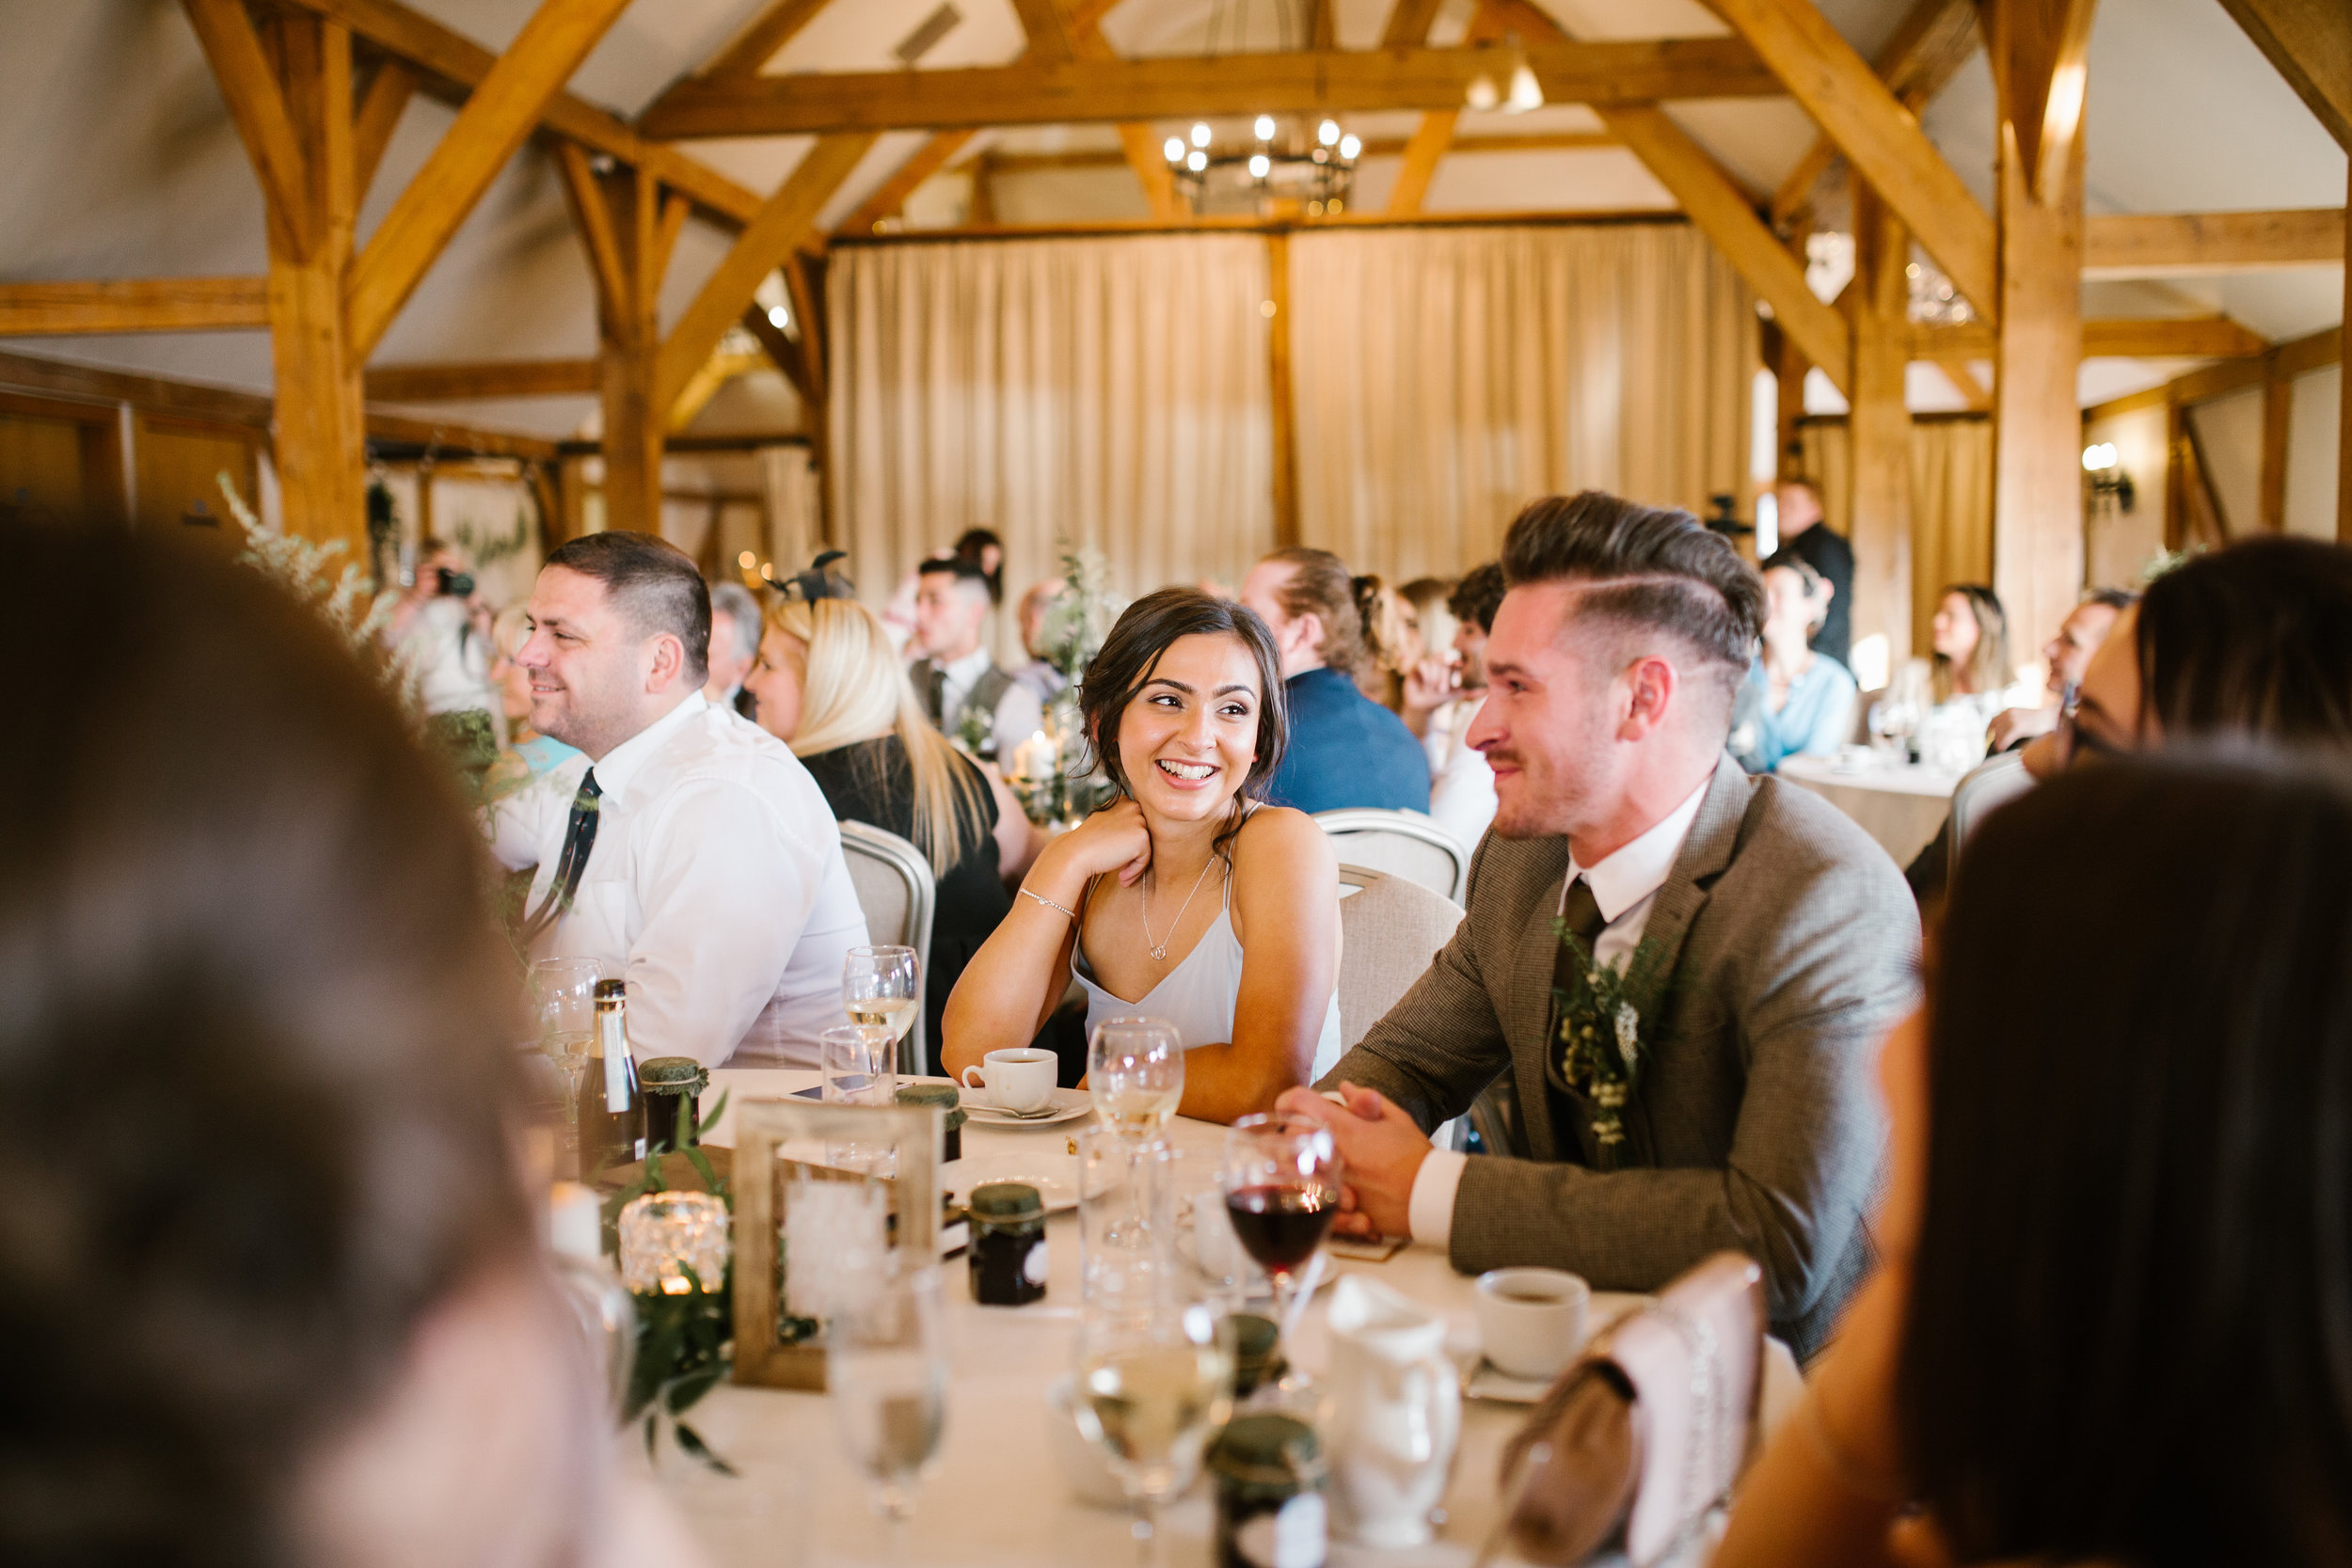 Sandhole Oak Barn, Rustic Wedding, DIY Wedding, Manchester wedding photographer, Birmingham wedding photographer, barn wedding-280.jpg